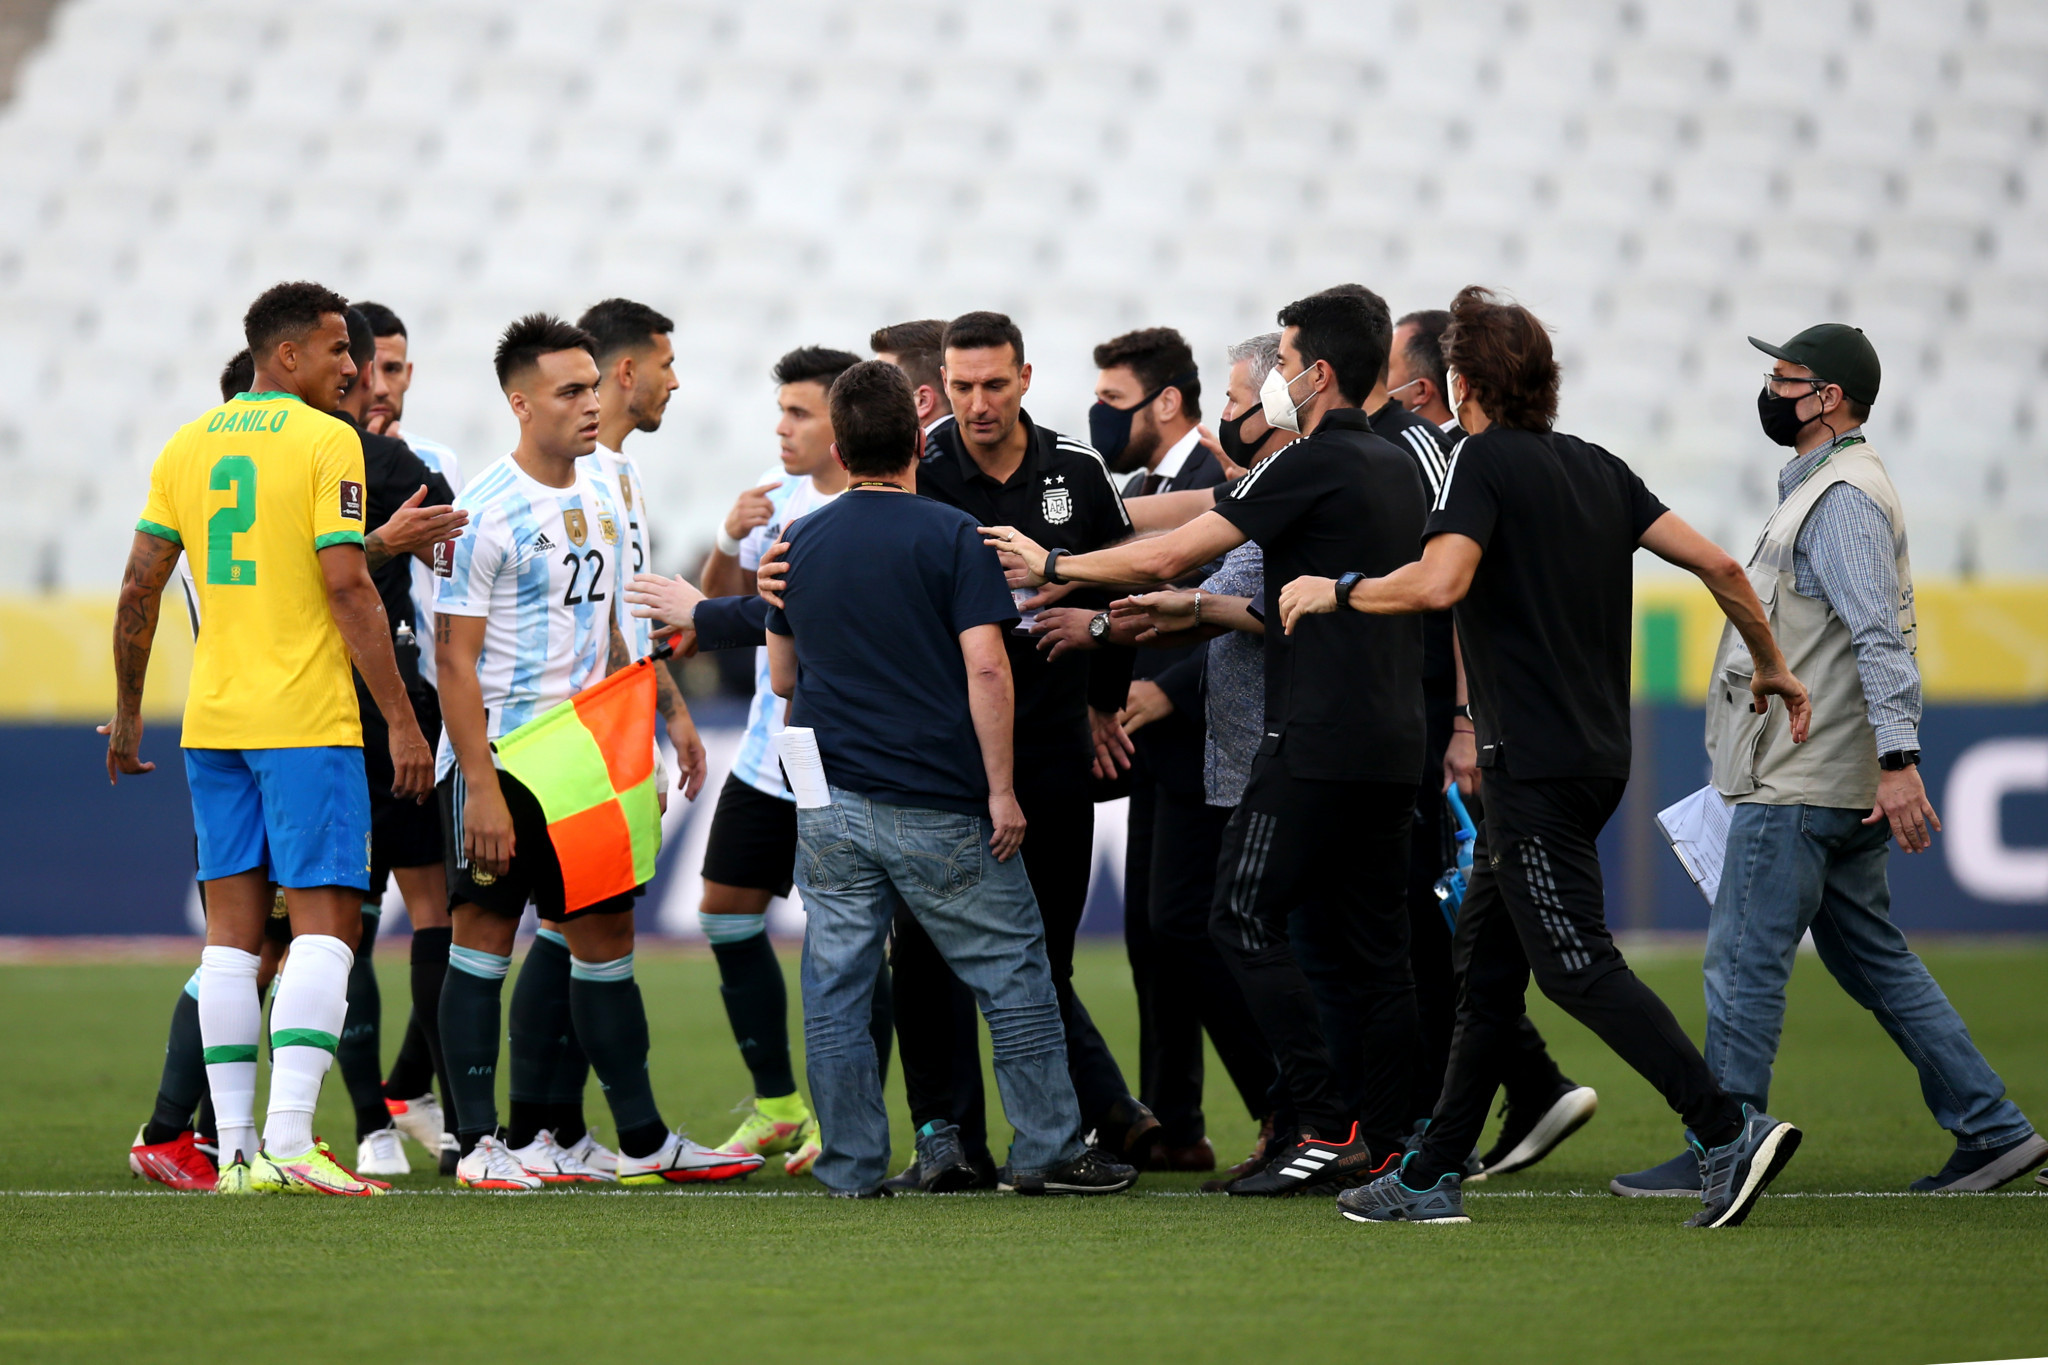 Four Argentinian players were released from the squad after the health officials stormed the pitch after 10 minutes to abandon the game their Brazil in São Paulo ©Getty Images